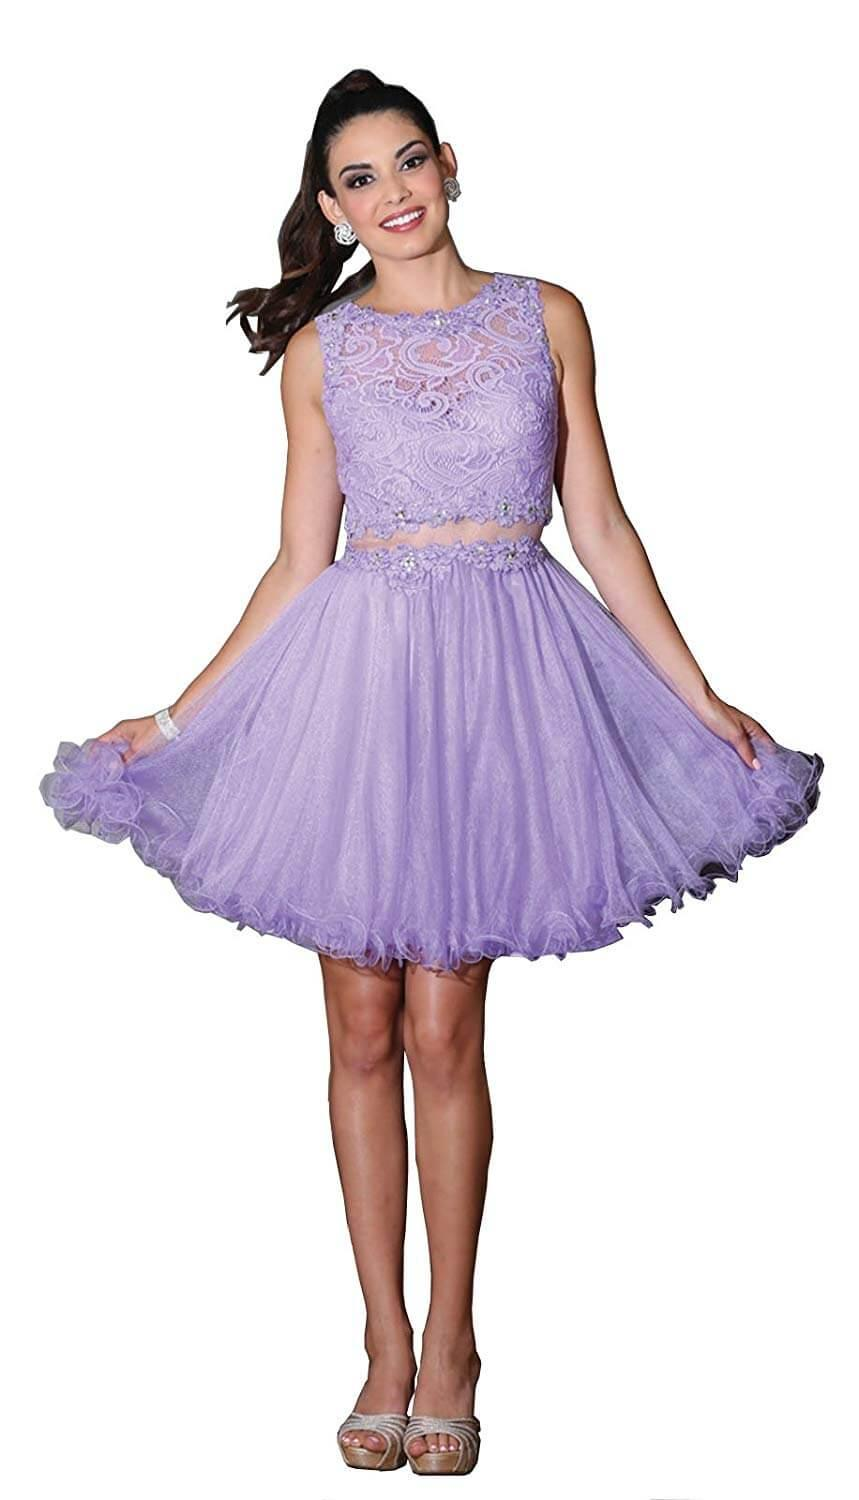 Short Prom Formal Homecoming Dress - The Dress Outlet Lilac